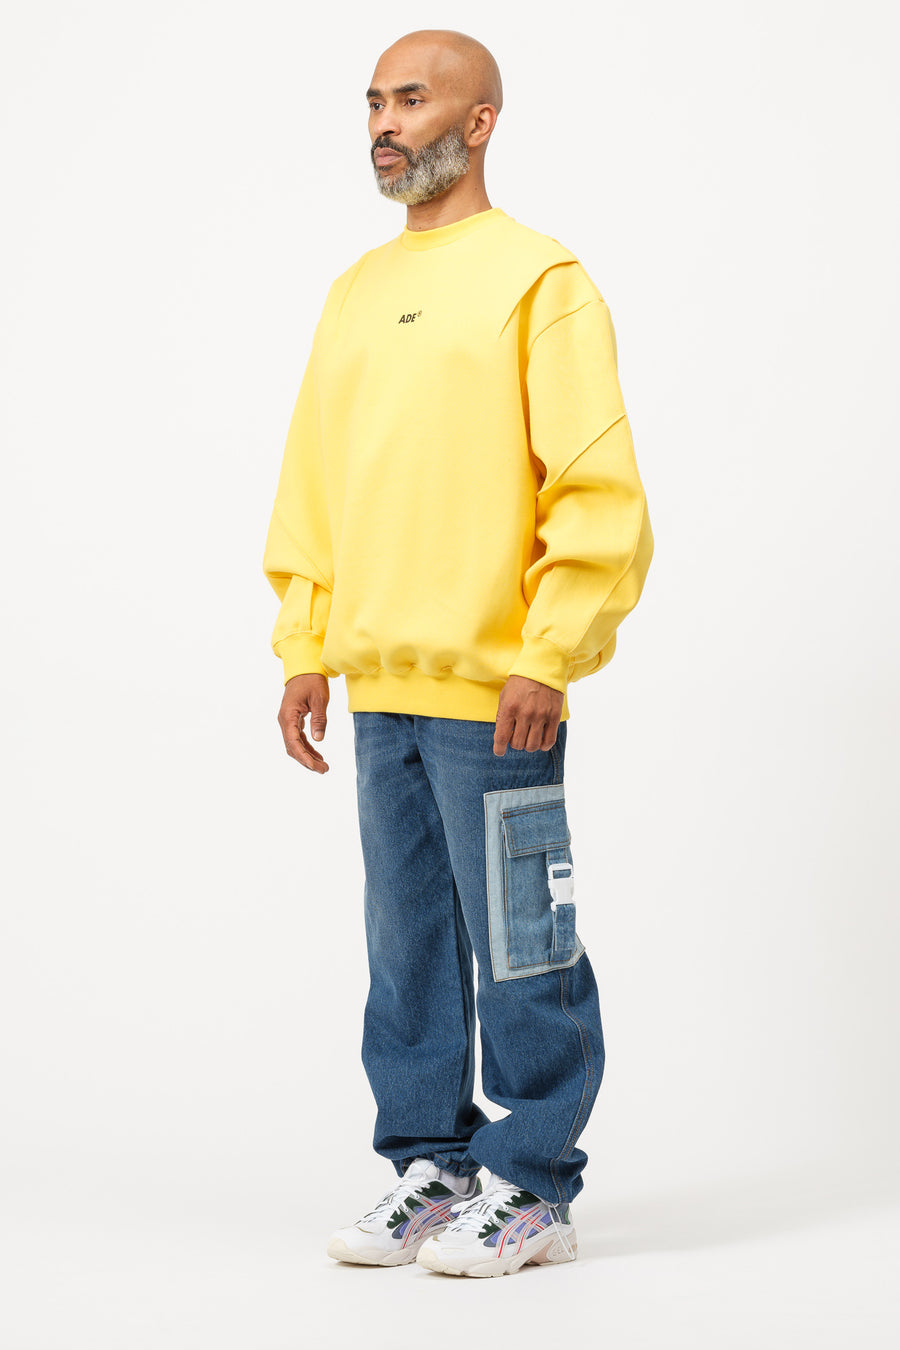 Adererror Ade Sweatshirt in Yellow - Notre